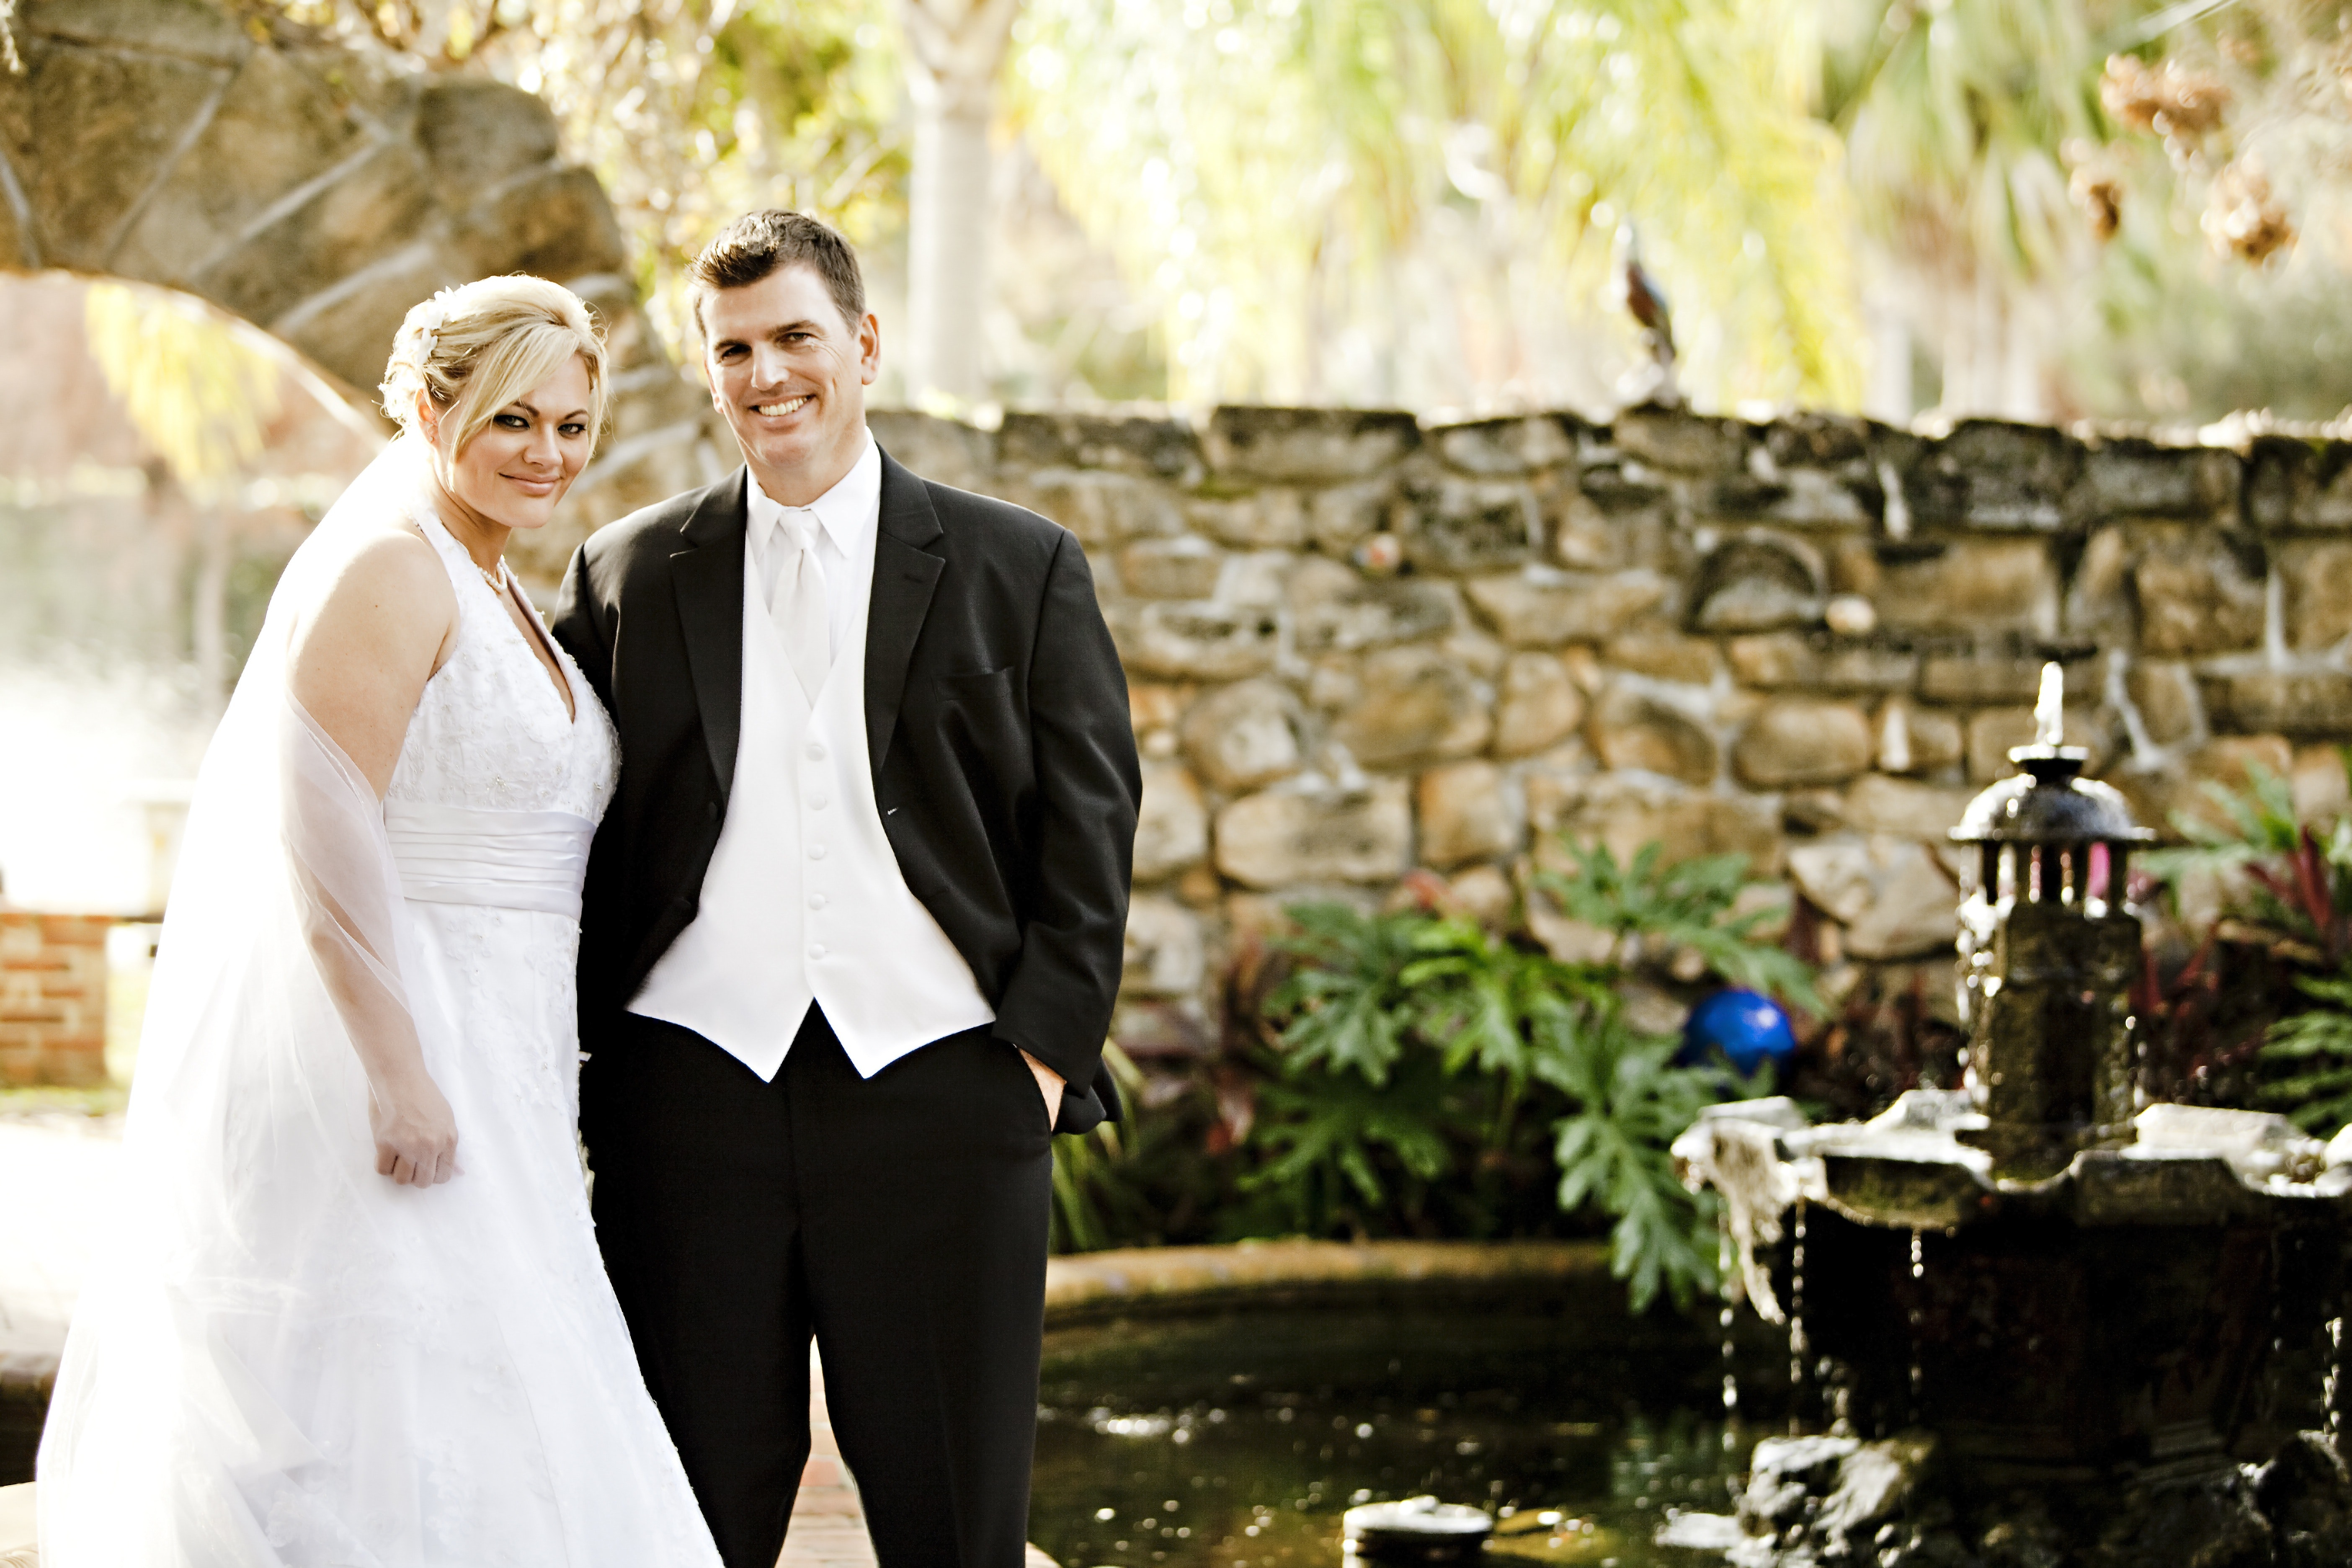 Man and Woman in Their Wedding Outfit With Brown Wall in the Background Near Fountain and Pond during Daytime, Beautiful, Male, Wedding, Together, HQ Photo